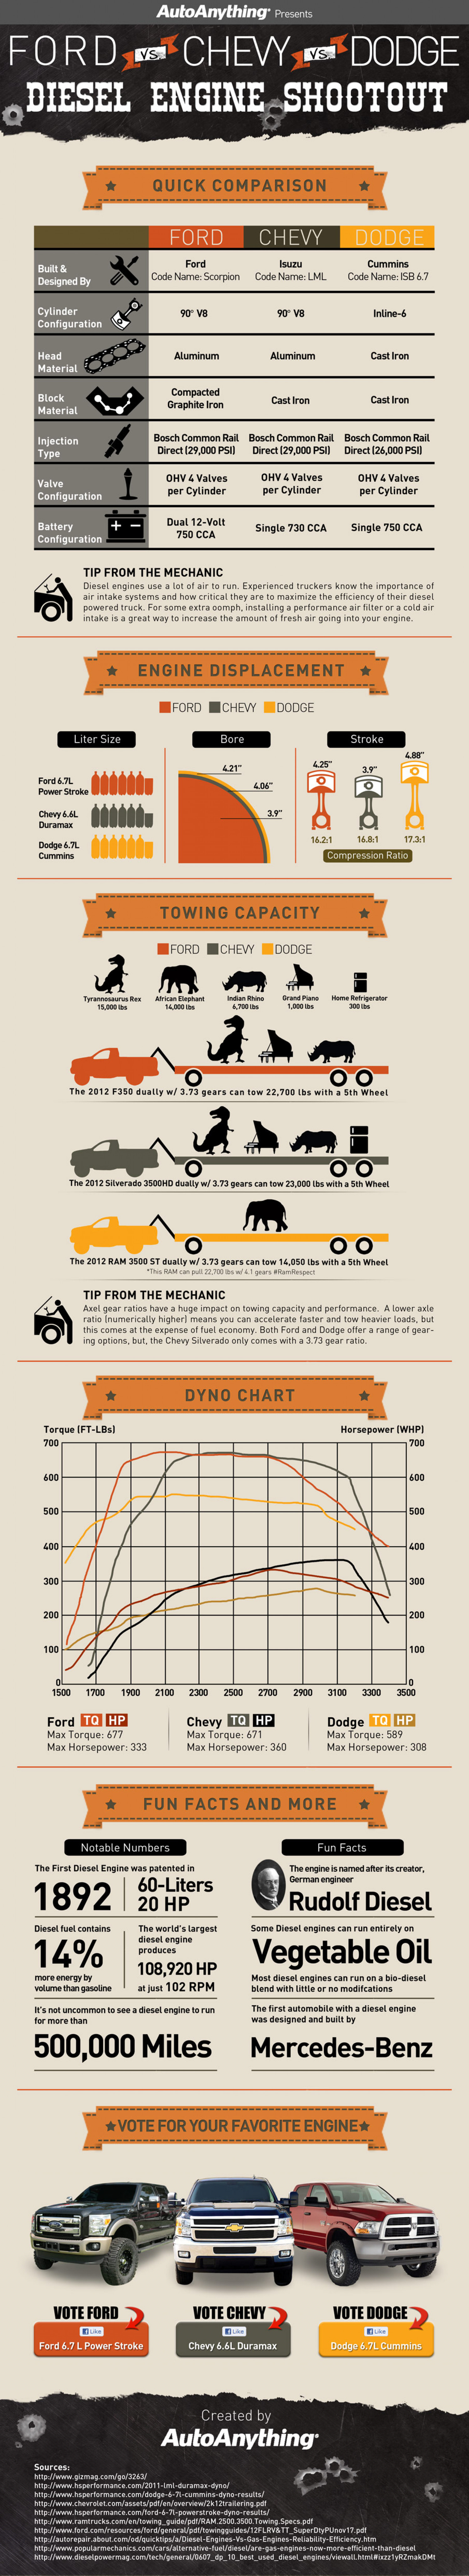 Diesel Engine Shootout: Ford vs Chevy vs Dodge Infographic